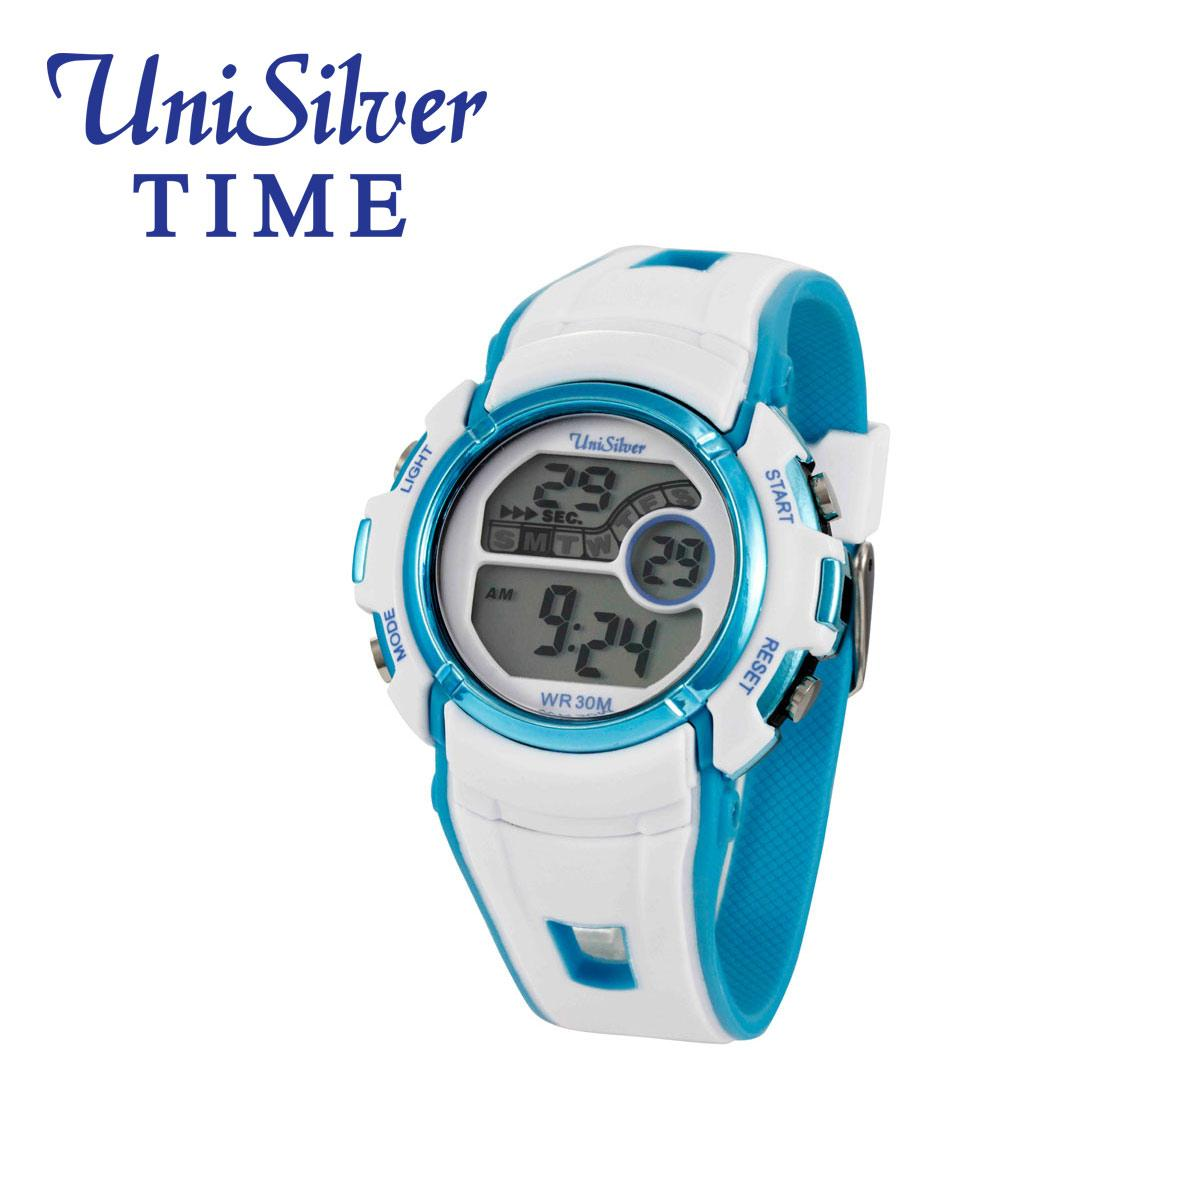 UniSilver TIME Xenon Digital Watch KW2212-2001 (White/Blue)